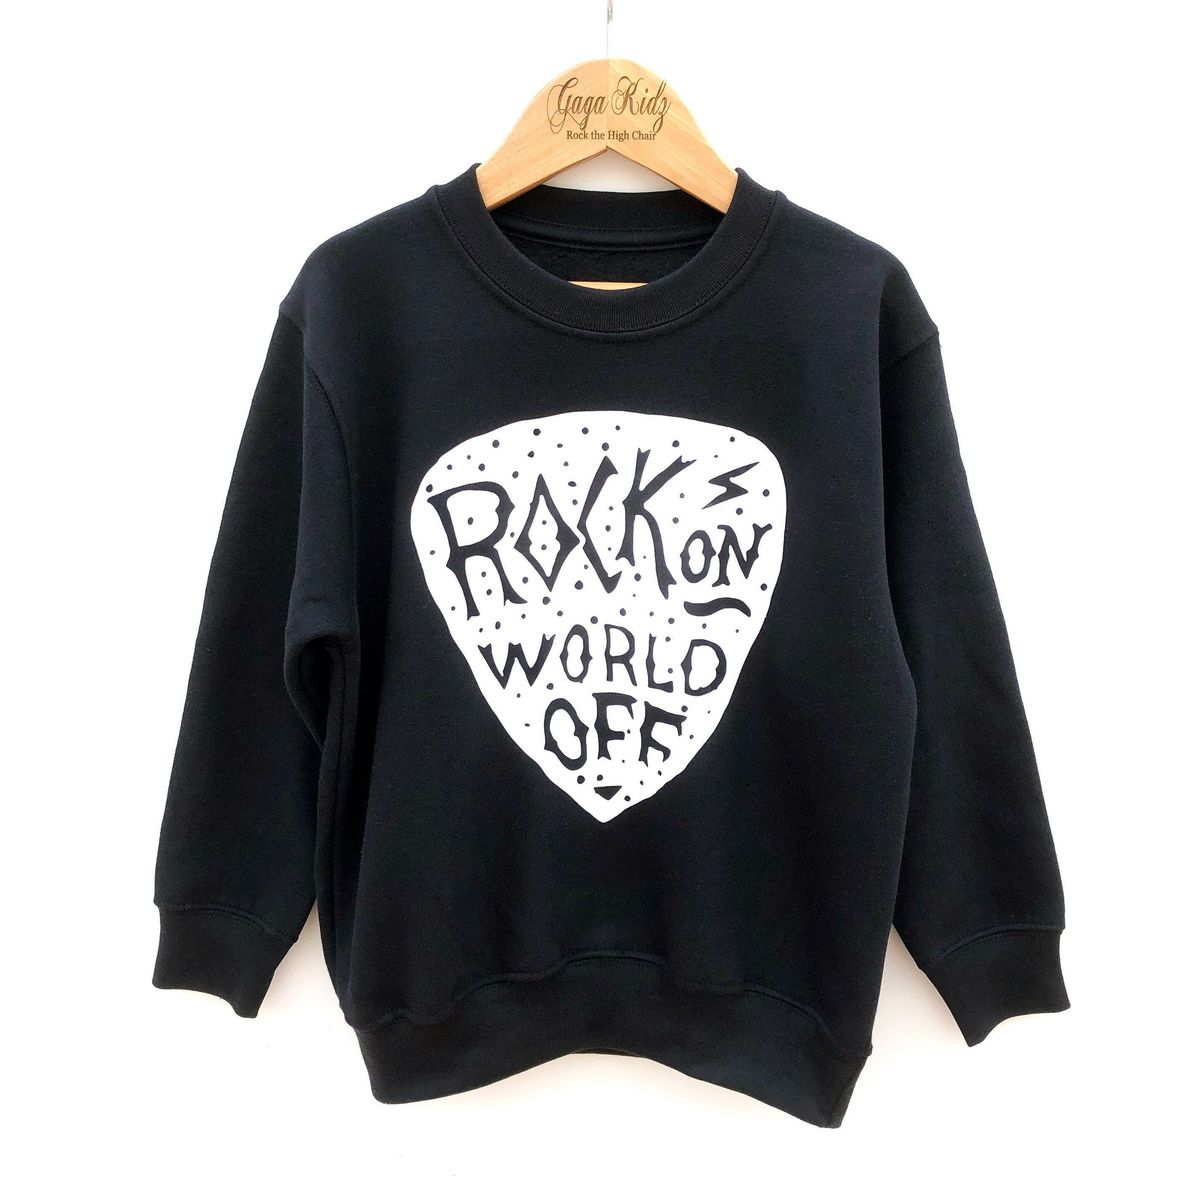 Rock on World off Sweatshirt - product images  of